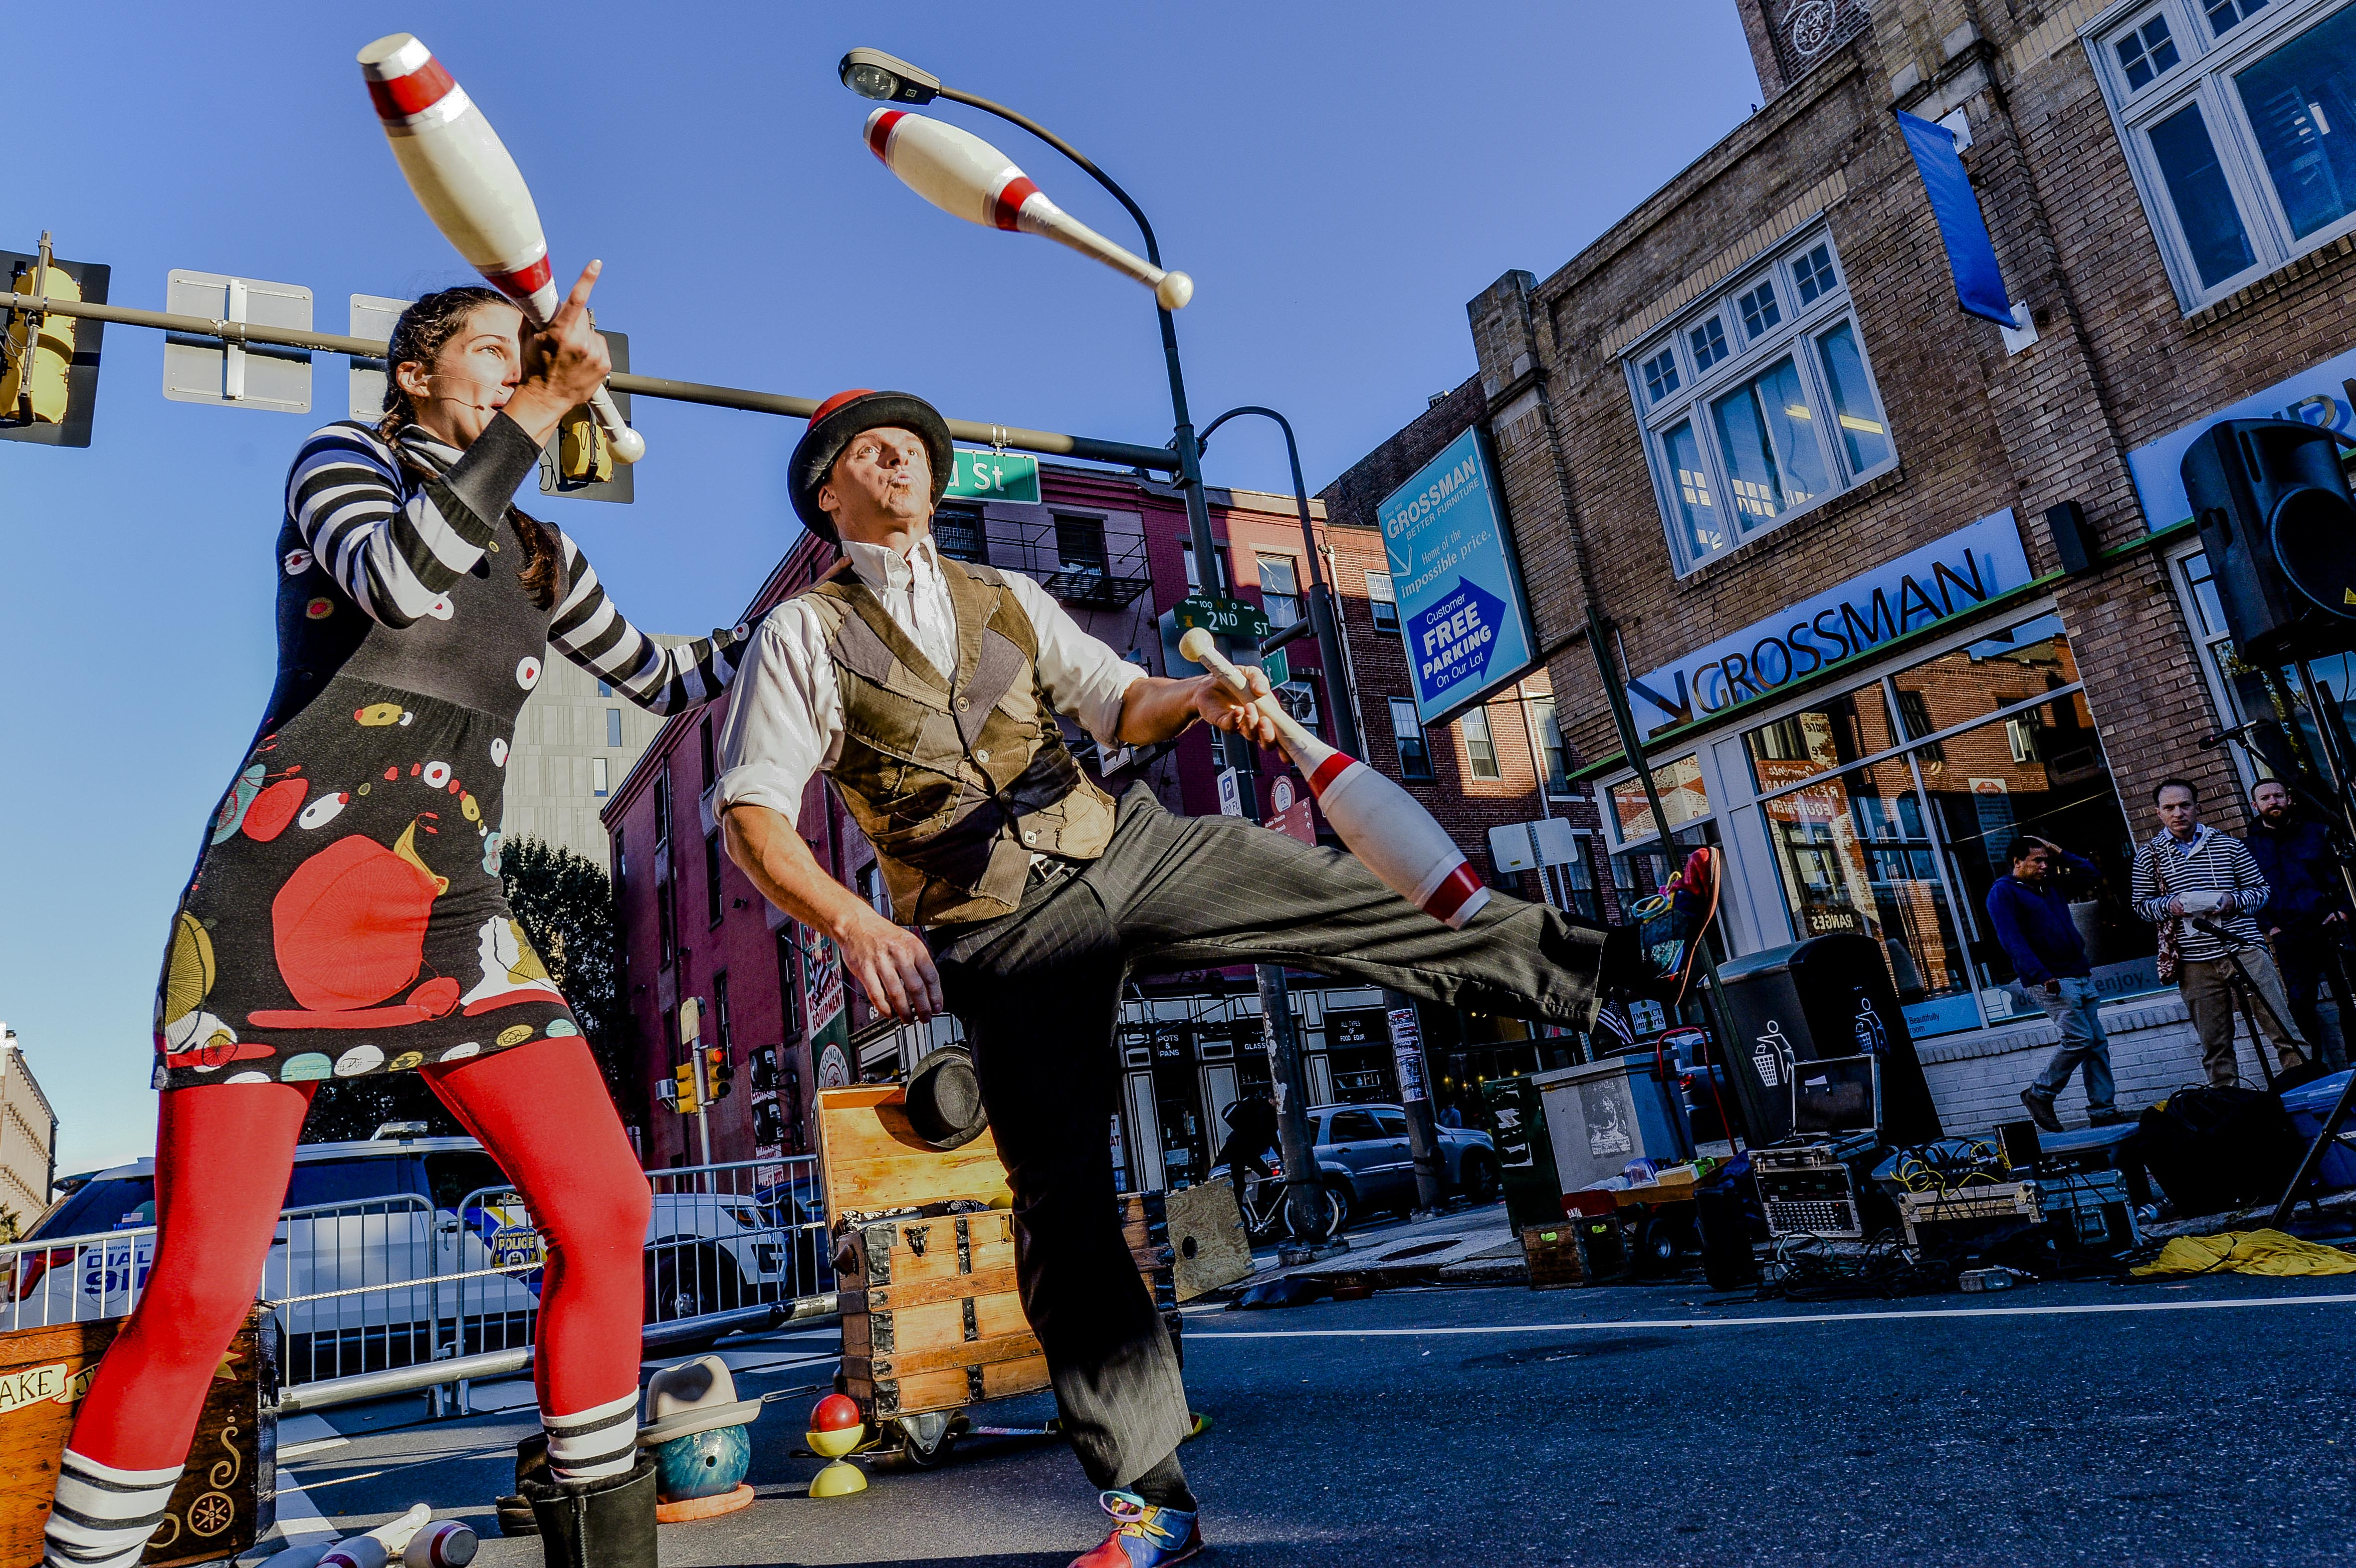 Give_and_Take_Jugglers_Photo_by_Kyle_Ober.jpg